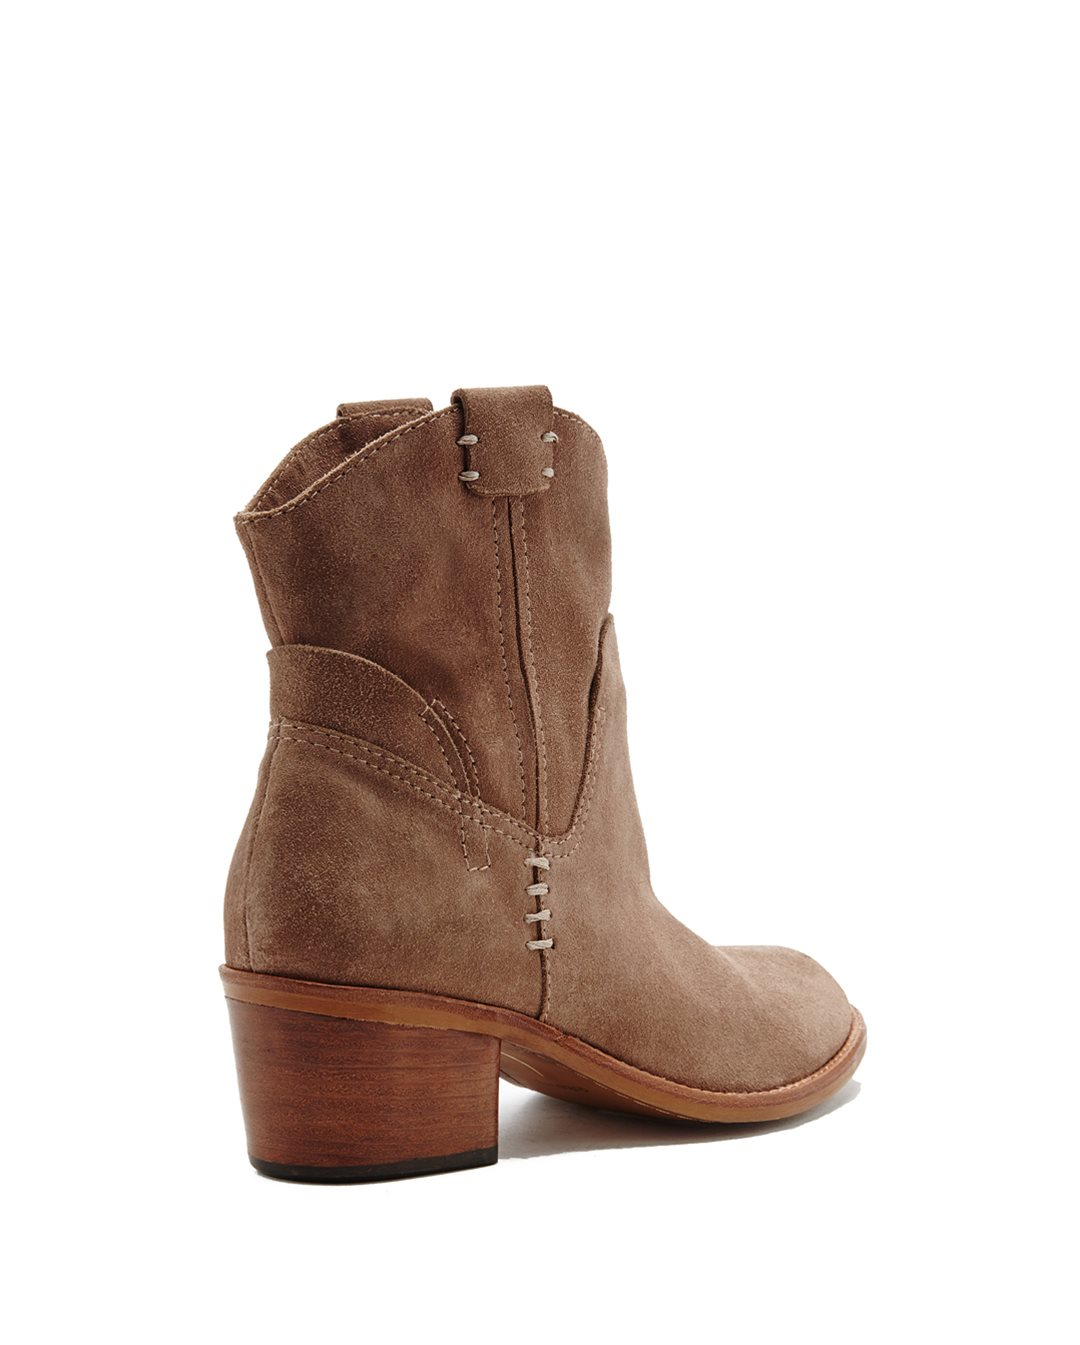 dolce vita grayden suede ankle boots in brown taupe lyst